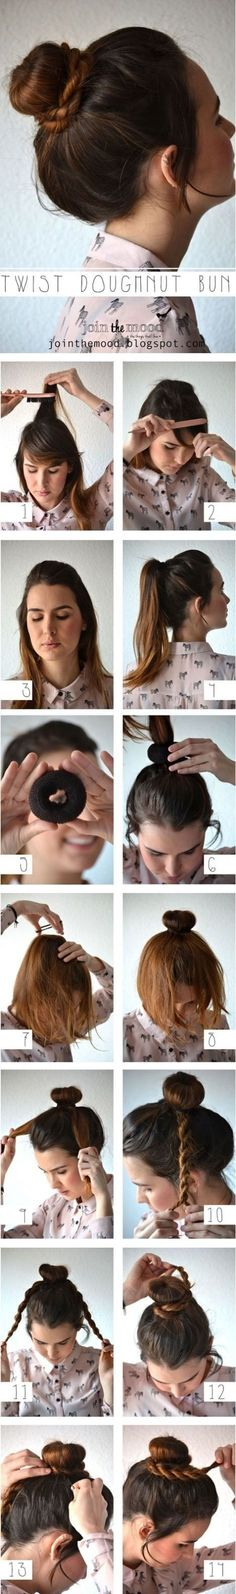 How To Make Twist Doughnut Bun For Your Hair - Hair Tutorials Step By Step Hairstyles, Braided Hairstyles Tutorials, Pretty Hairstyles, Easy Hairstyles, Hair Tutorials, Hairstyle Ideas, Wedding Hairstyles, Updo Hairstyle, Everyday Hairstyles